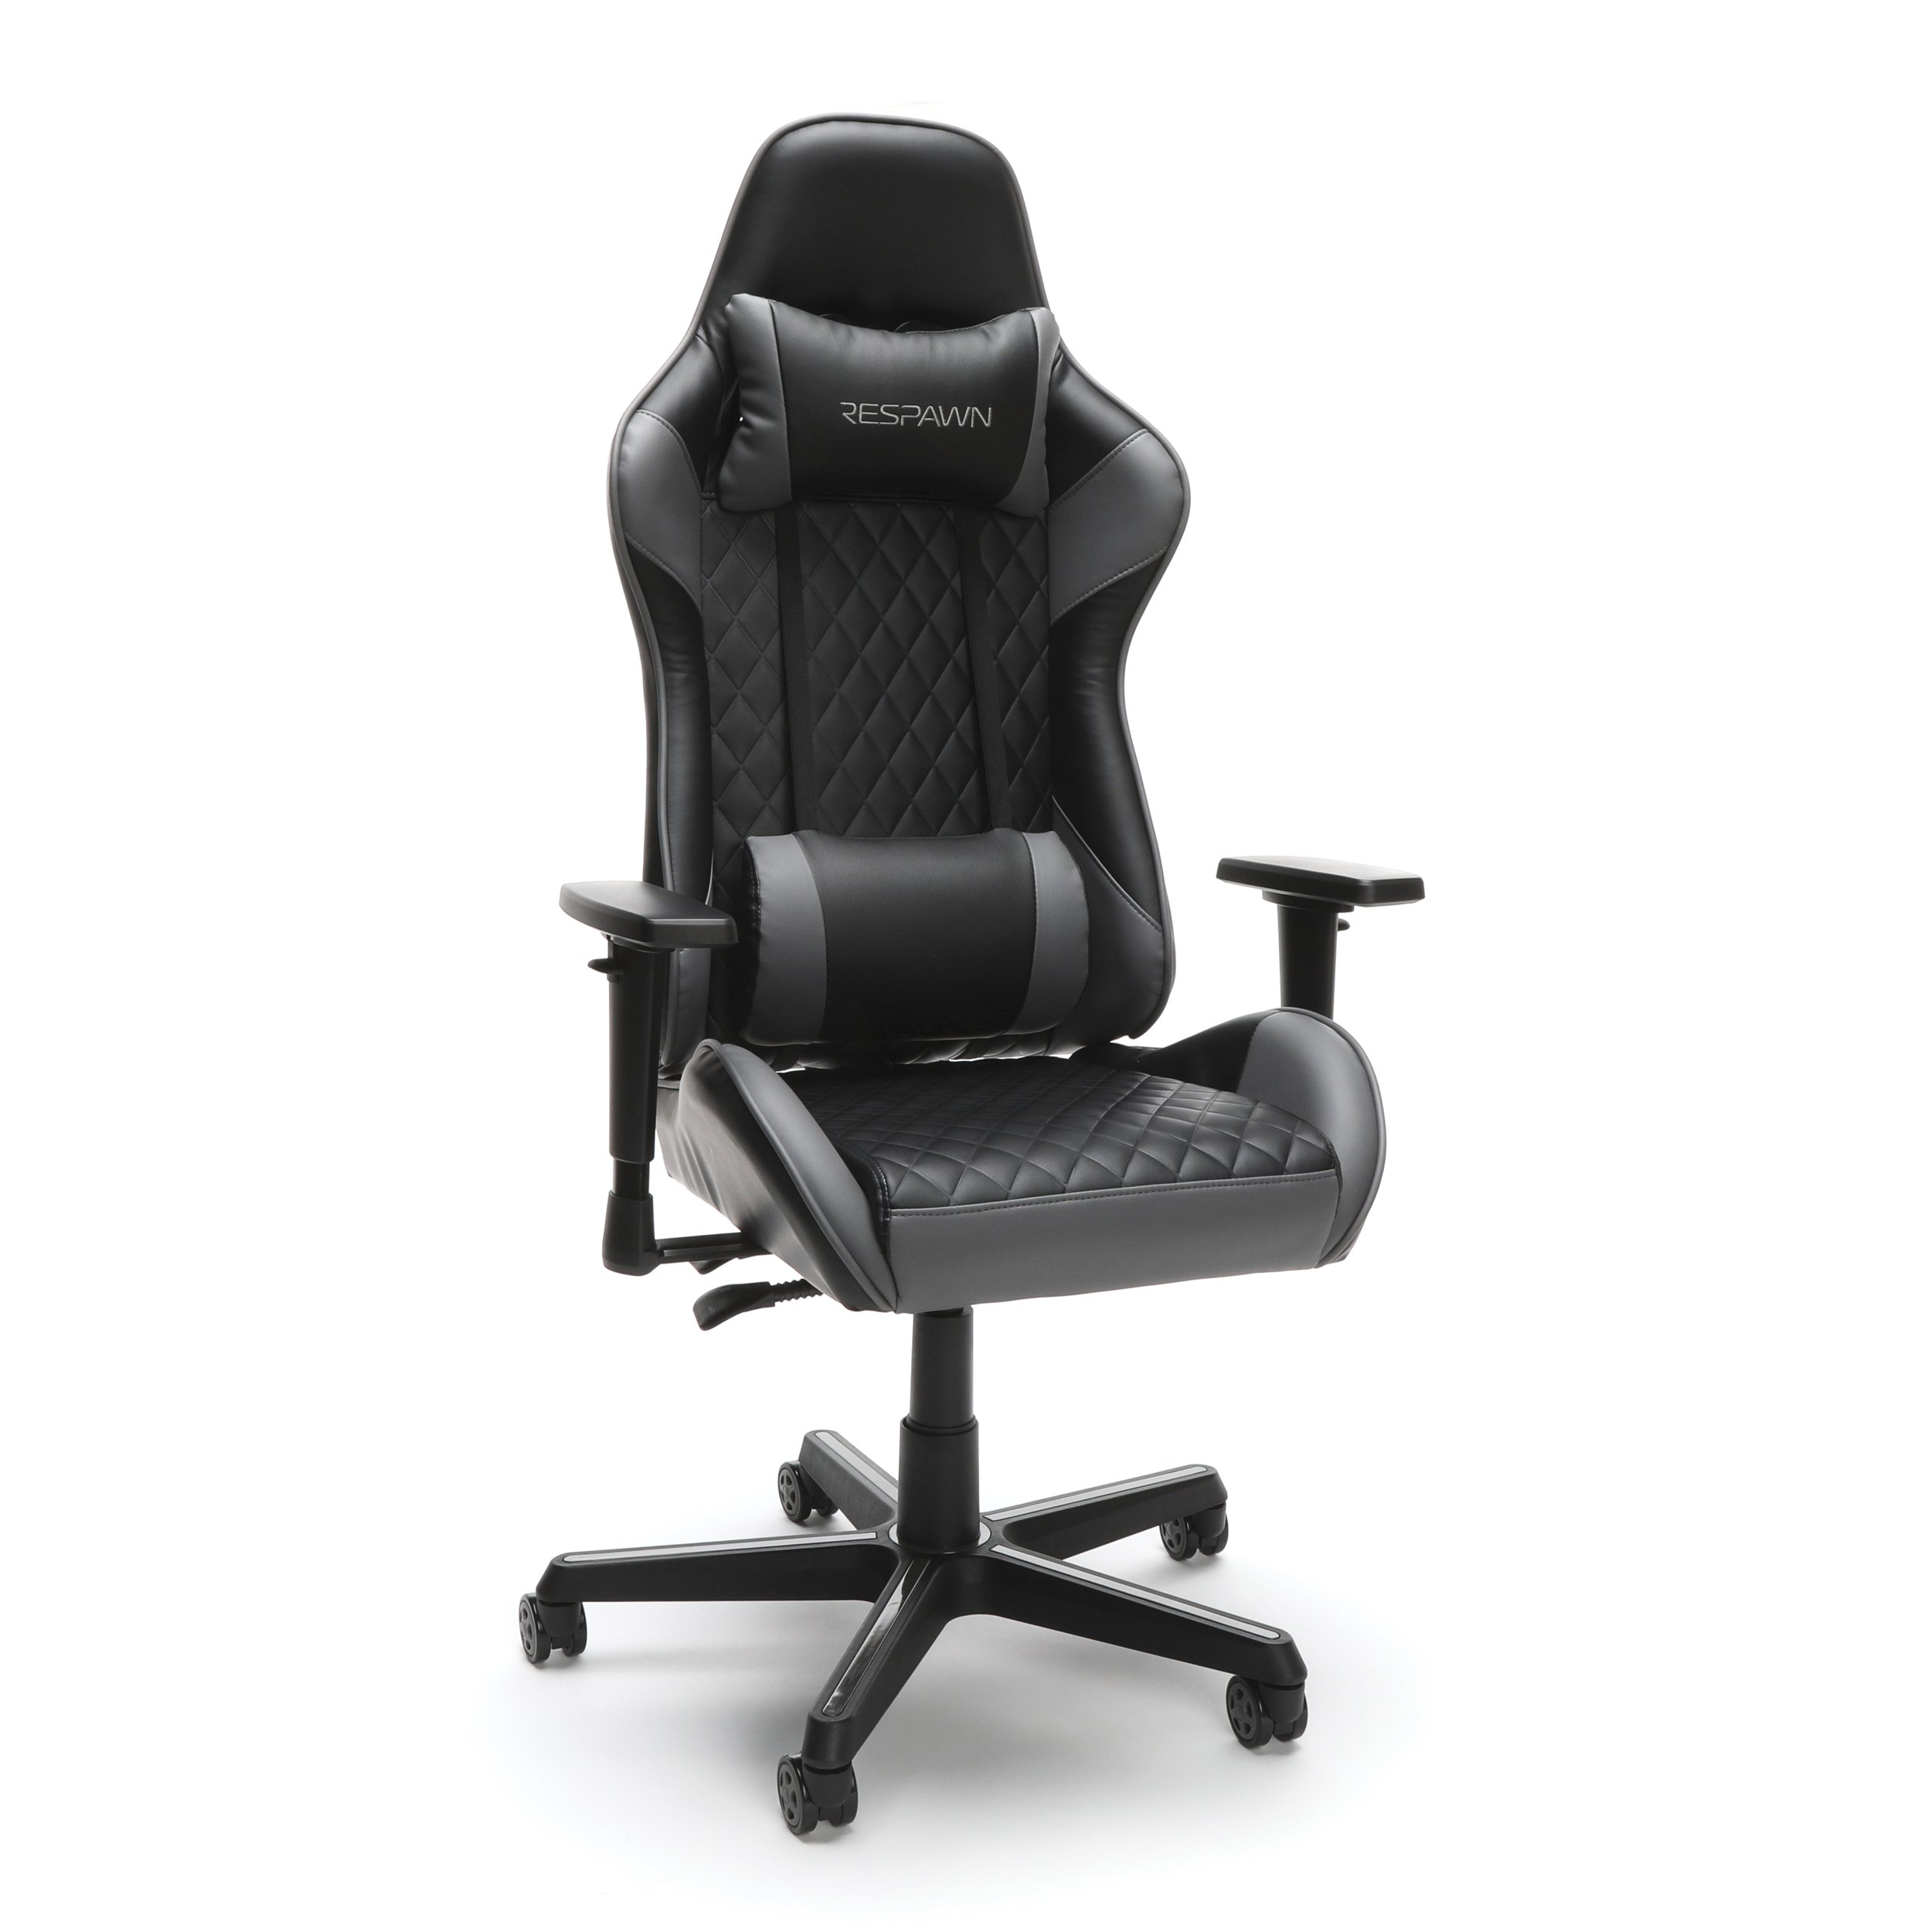 RESPAWN-100 Racing Style Gaming Chair - Reclining Ergonomic Leather Chair, Office or Gaming Chair by RESPAWN